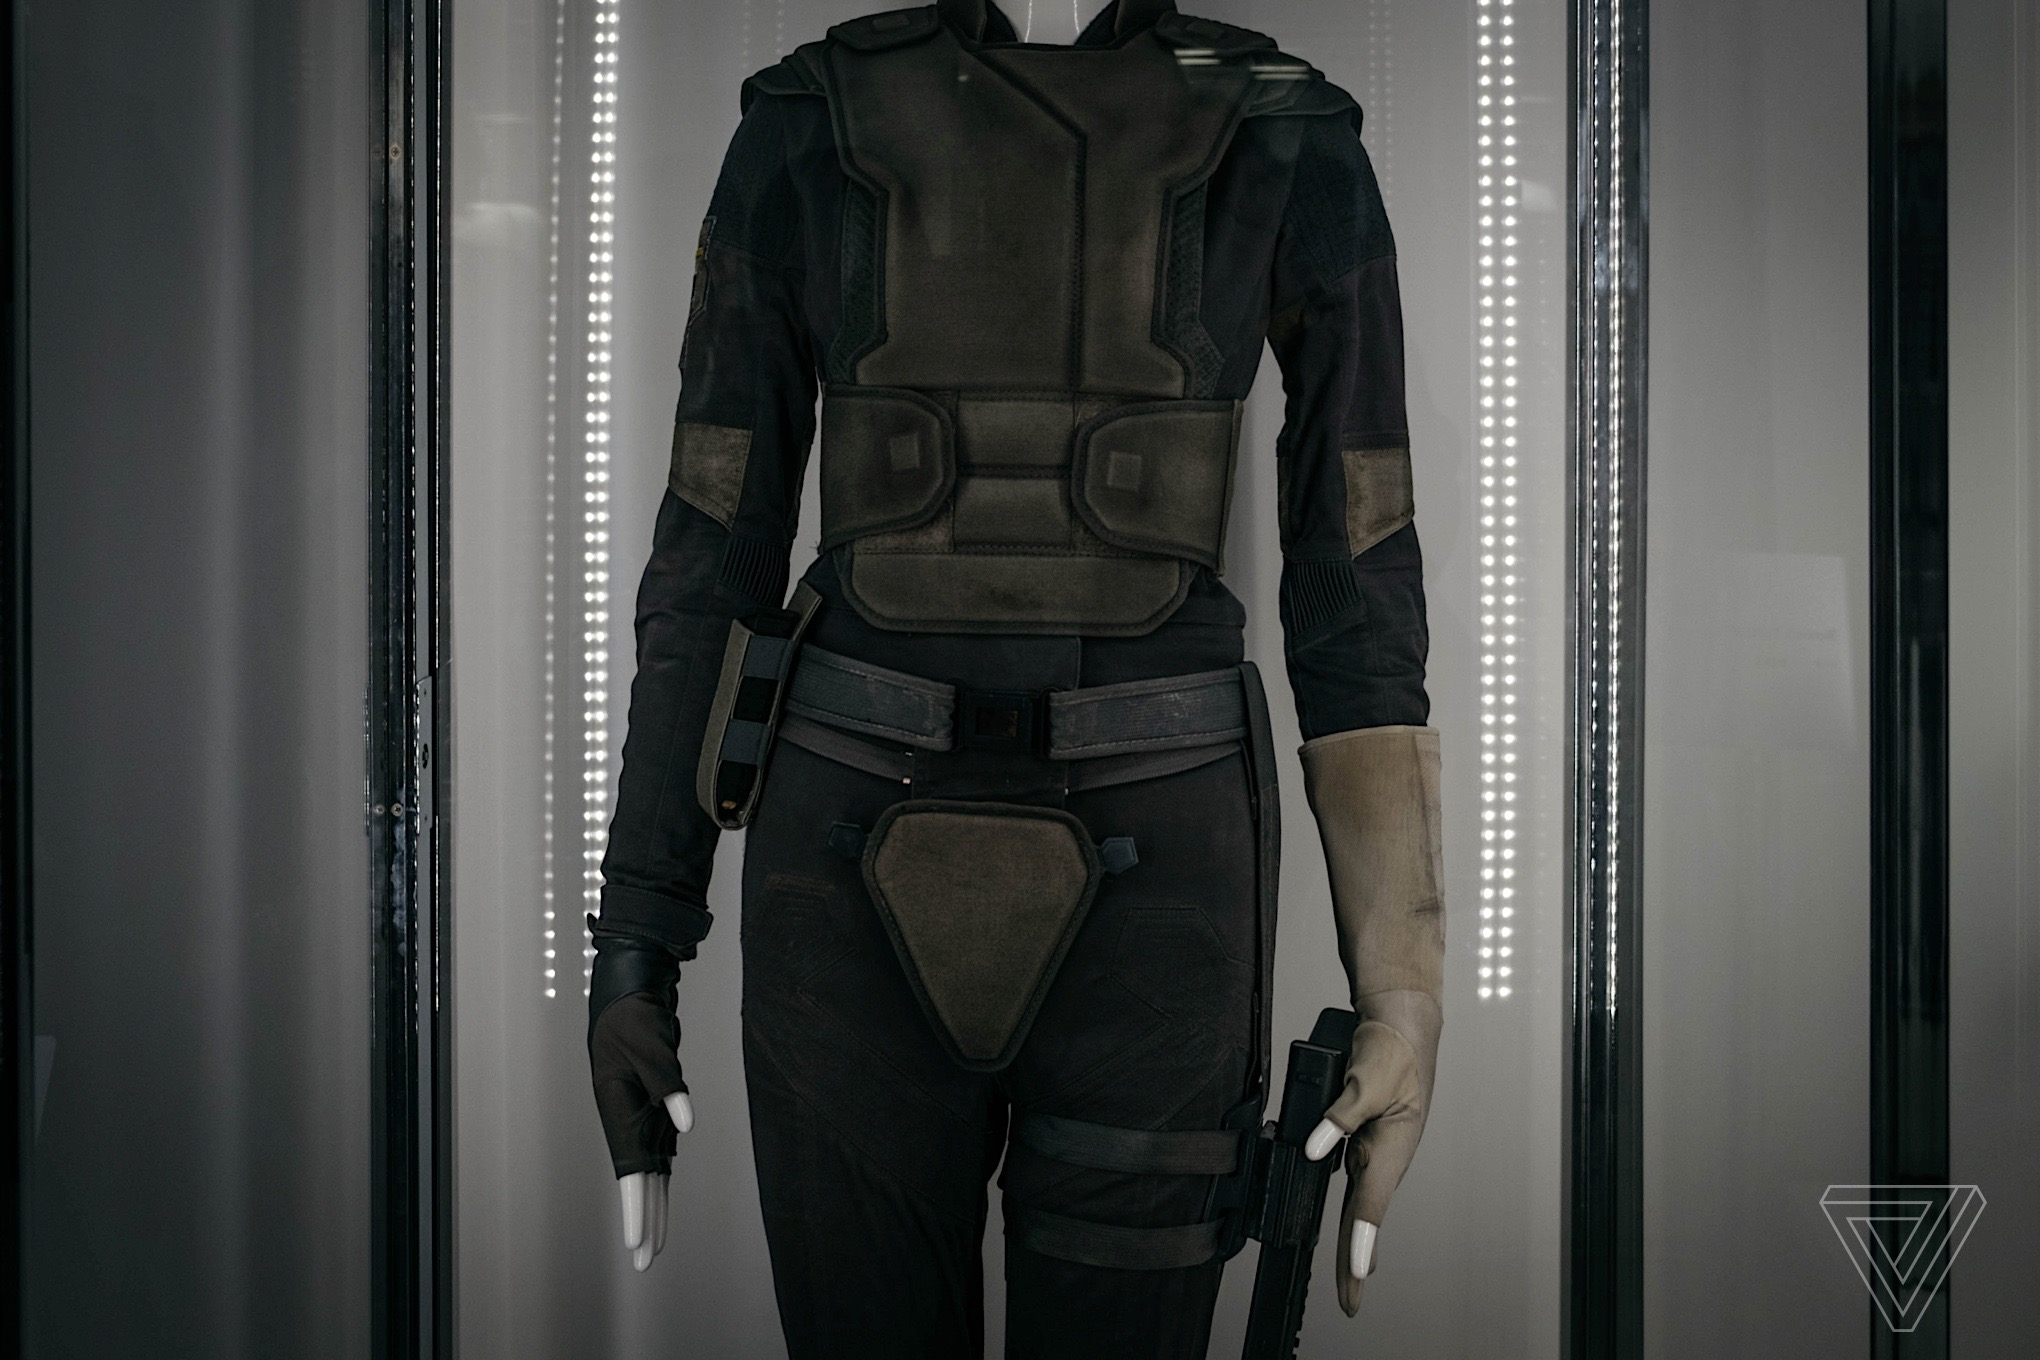 Ghost in the Shell costumes and props